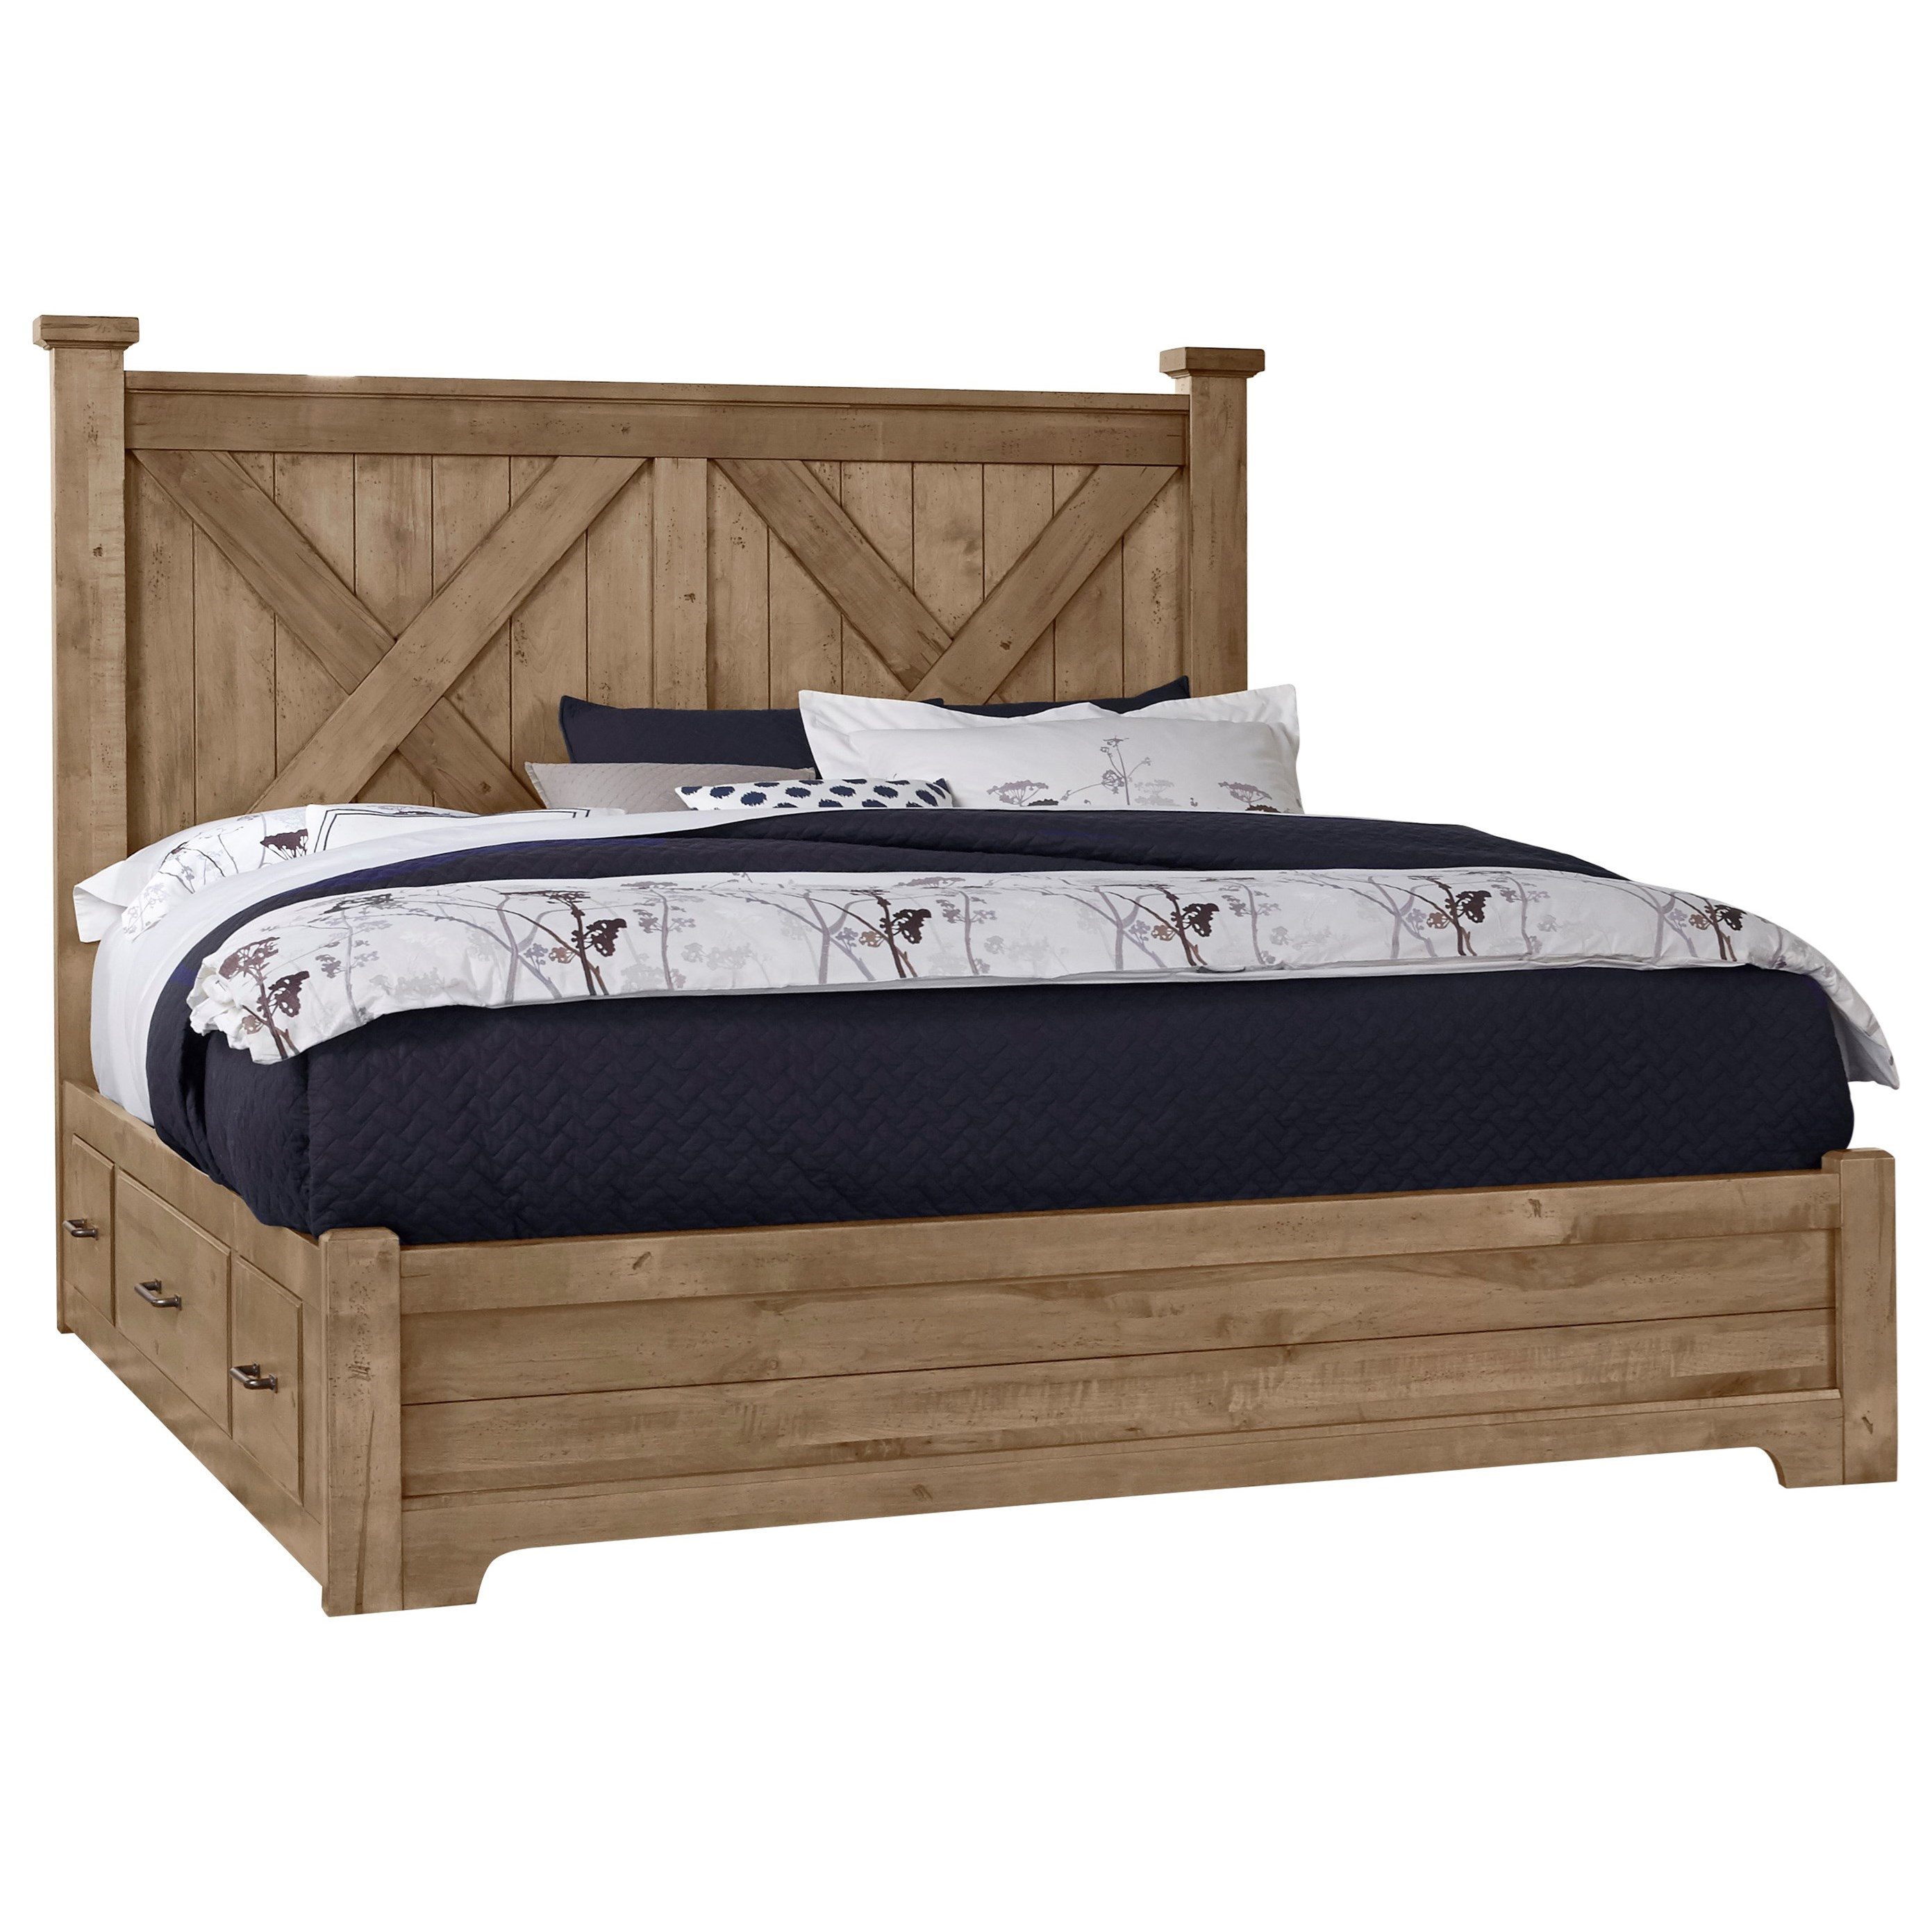 Queen X Bed With Double Side Storage